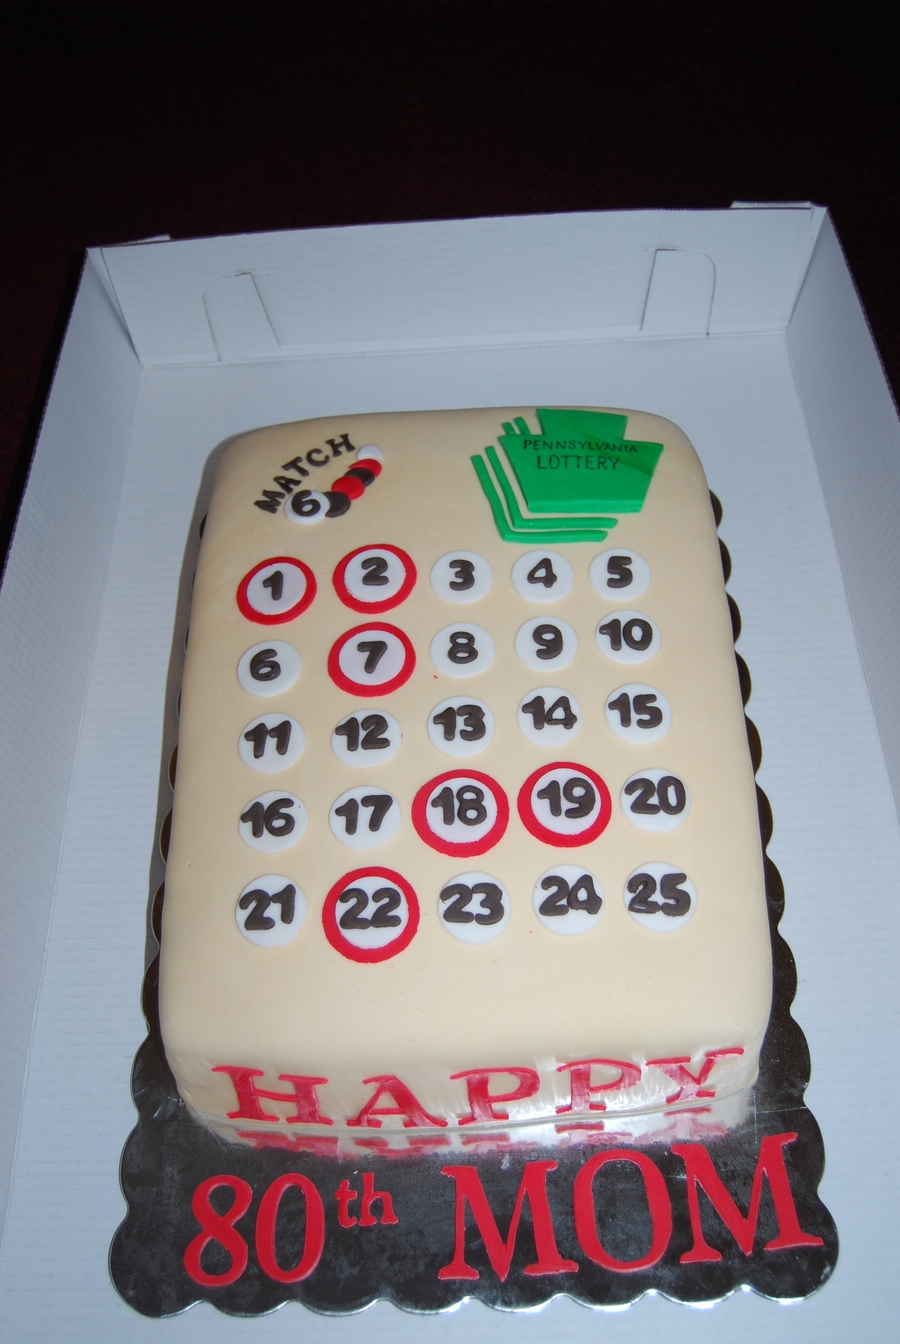 Pa Lottery Ticket Birthday Cake Cakecentral Com